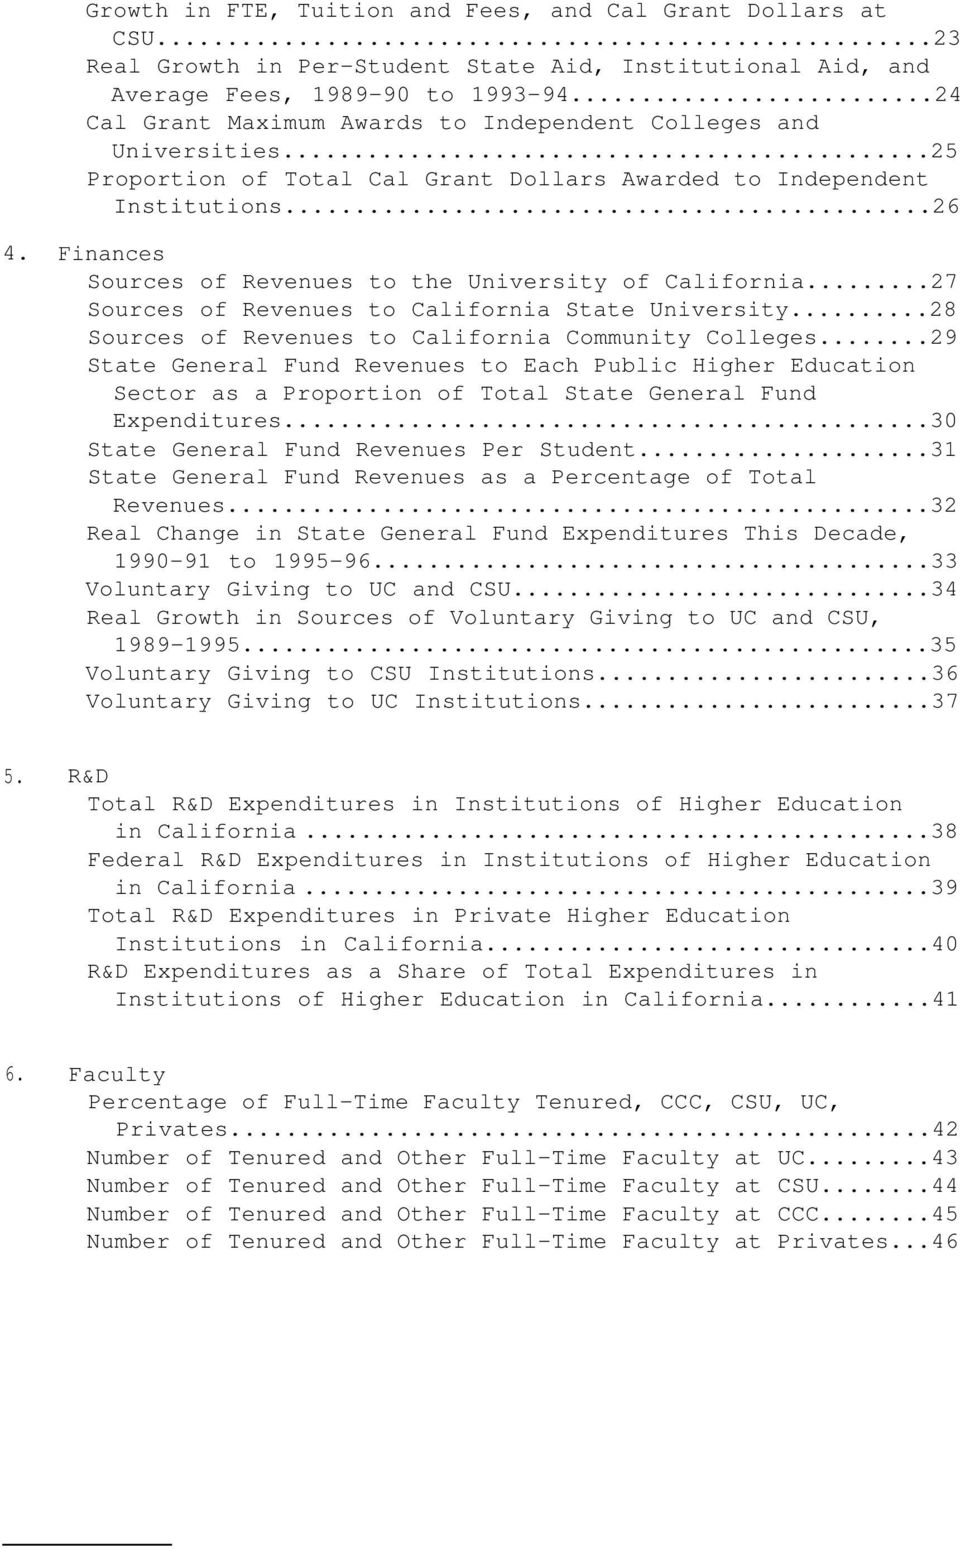 Finances Sources of Revenues to the University of California...27 Sources of Revenues to California State University...28 Sources of Revenues to California Community Colleges.